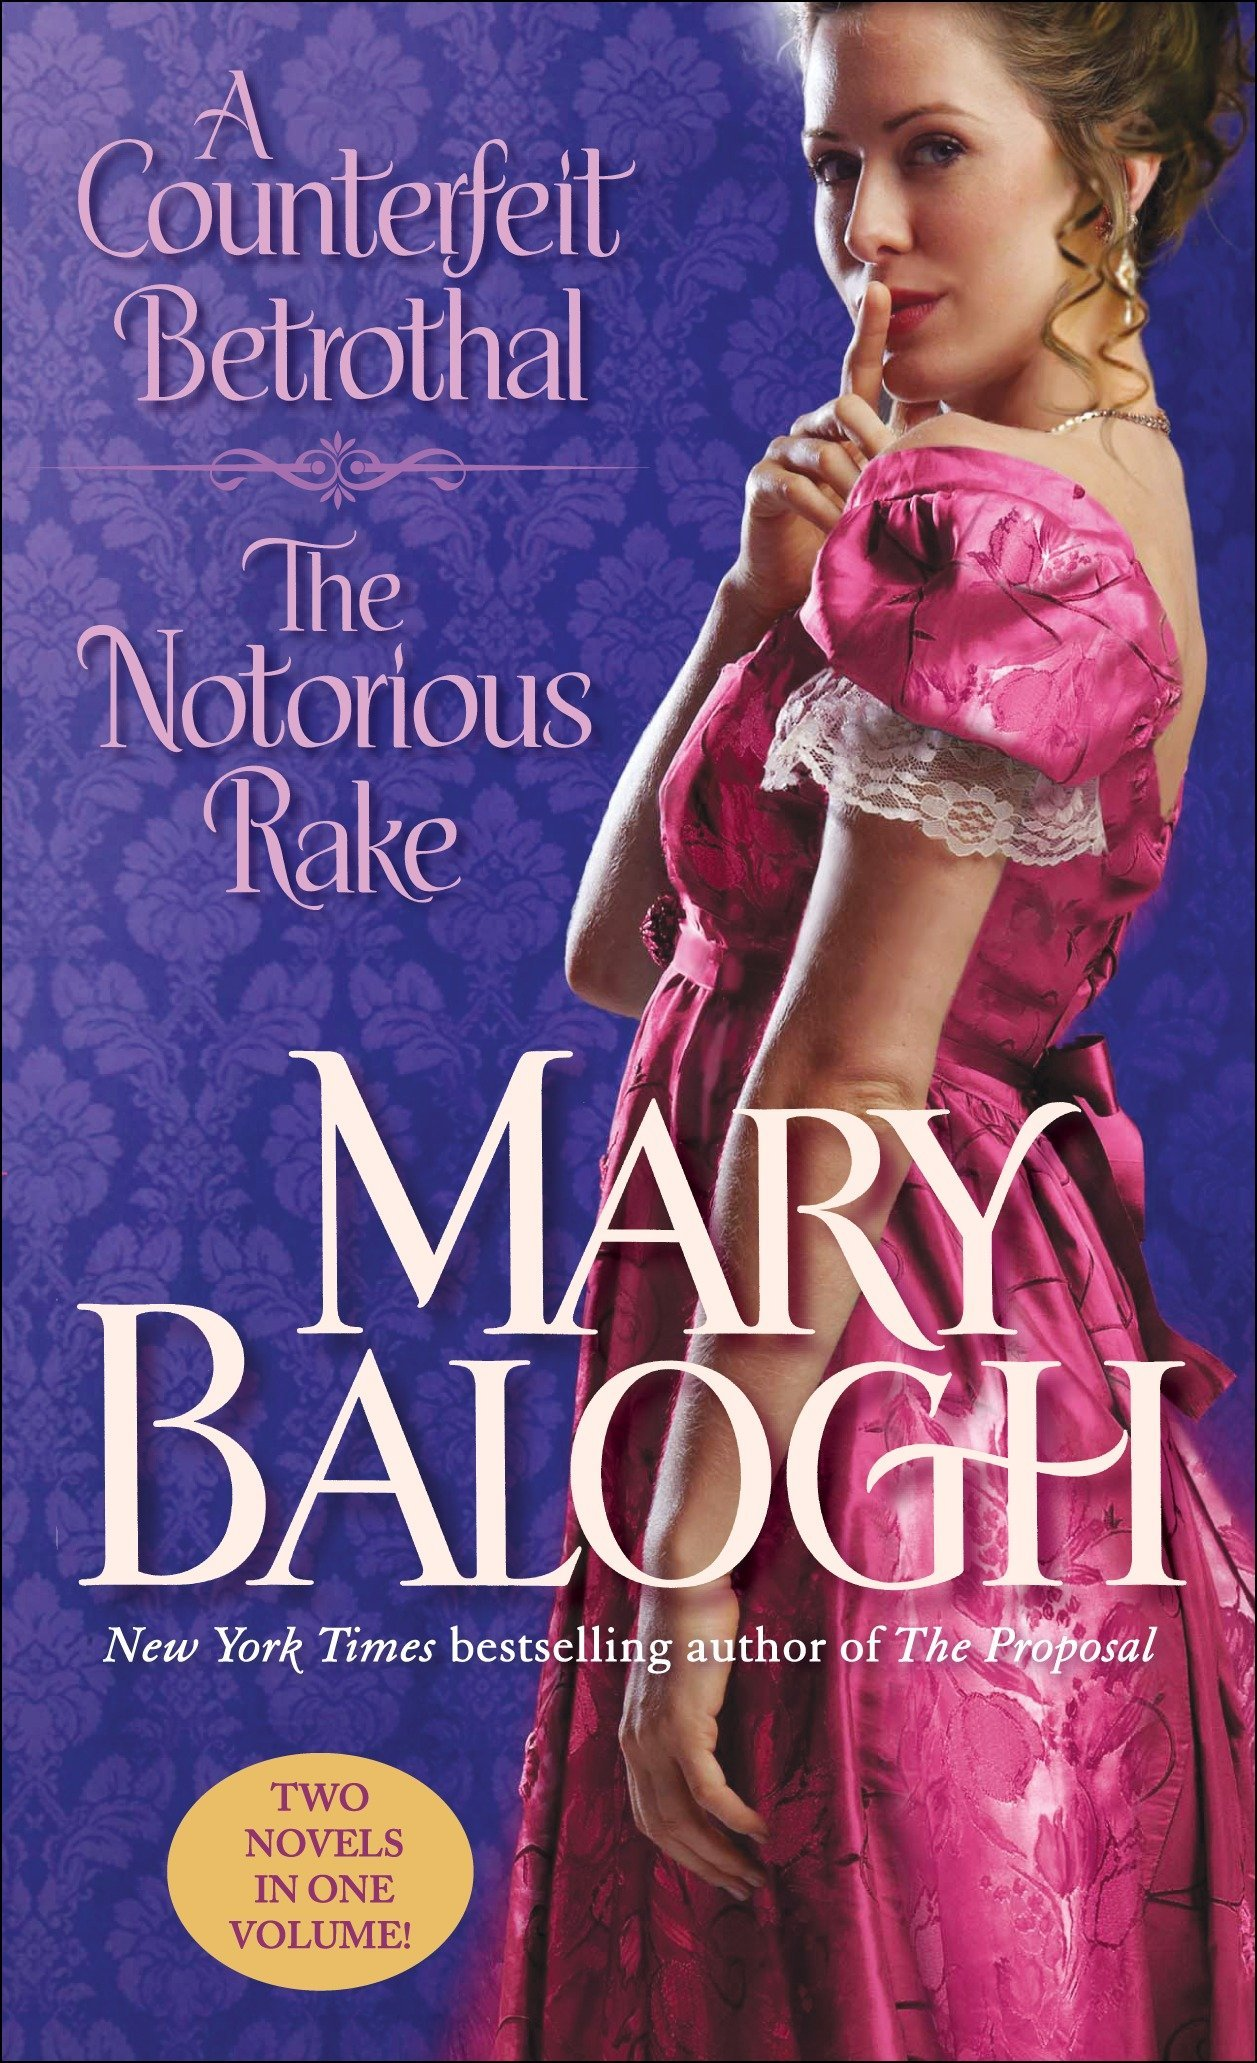 Download A Counterfeit Betrothal/The Notorious Rake: Two Novels in One Volume PDF